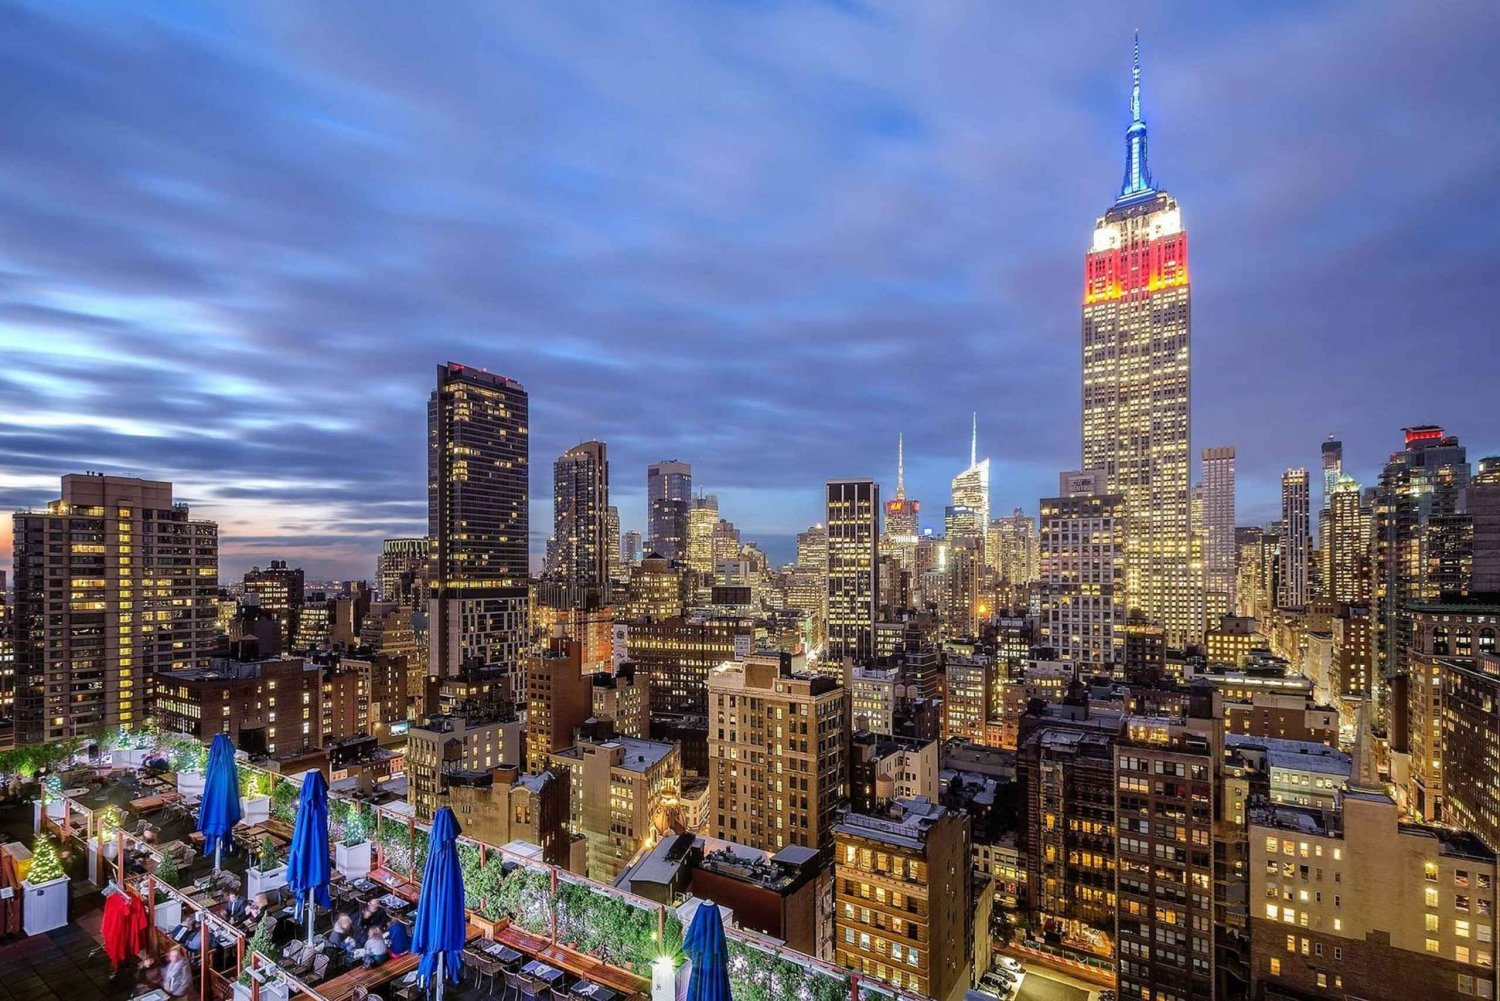 New York City: Evening Drinks at Rooftop Bars and Lounges